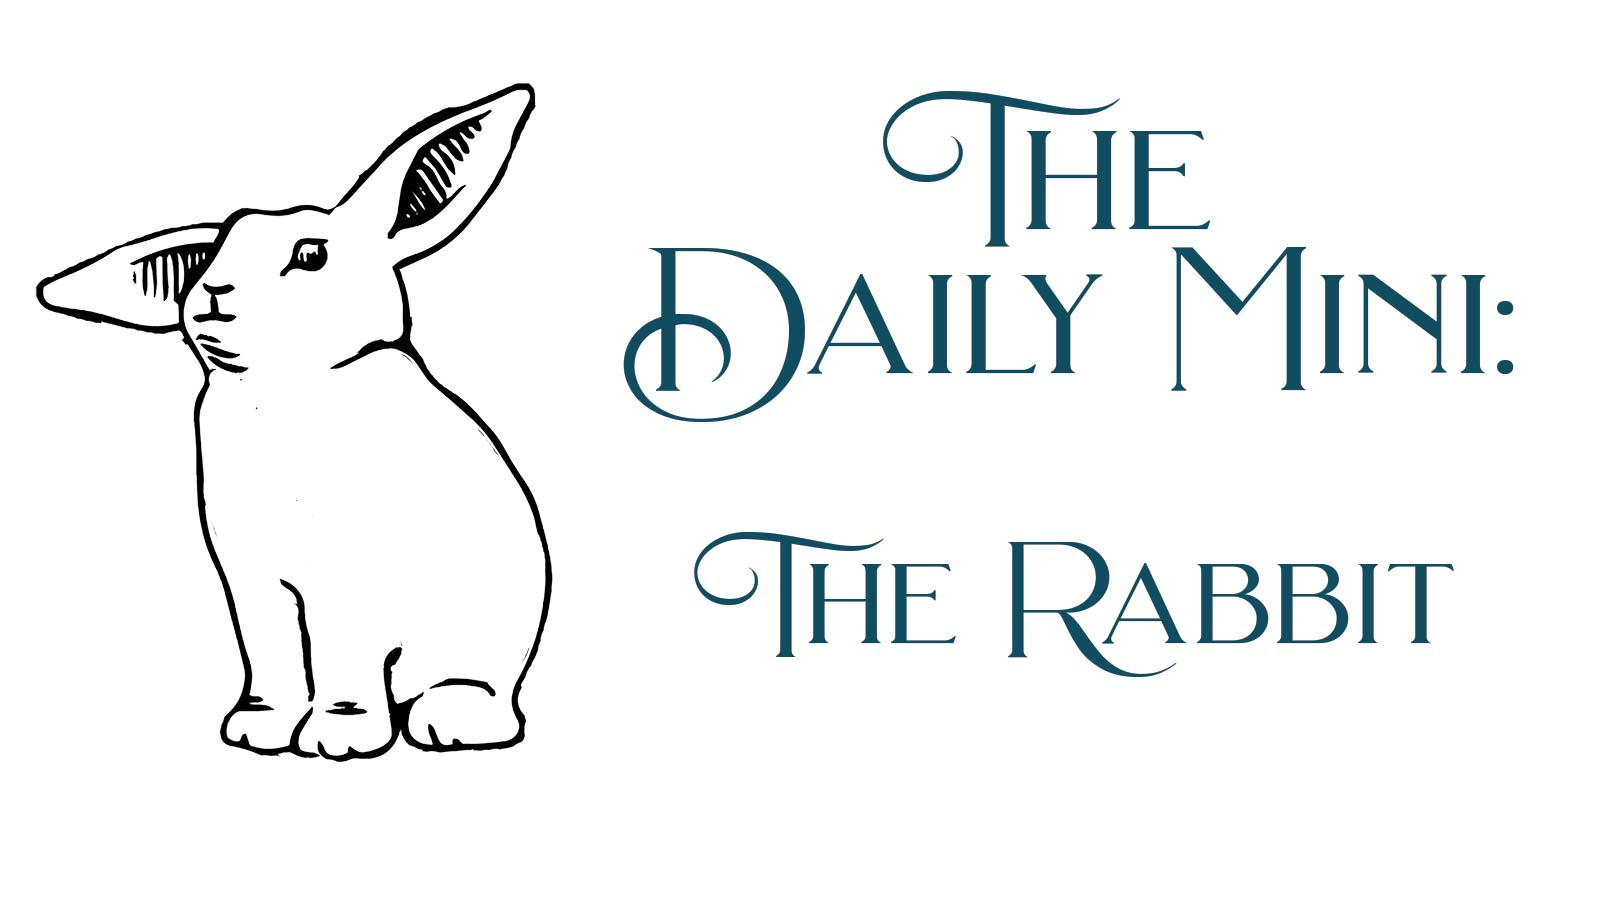 Line art rabbit next to words The Daily Mini: The Rabbit.